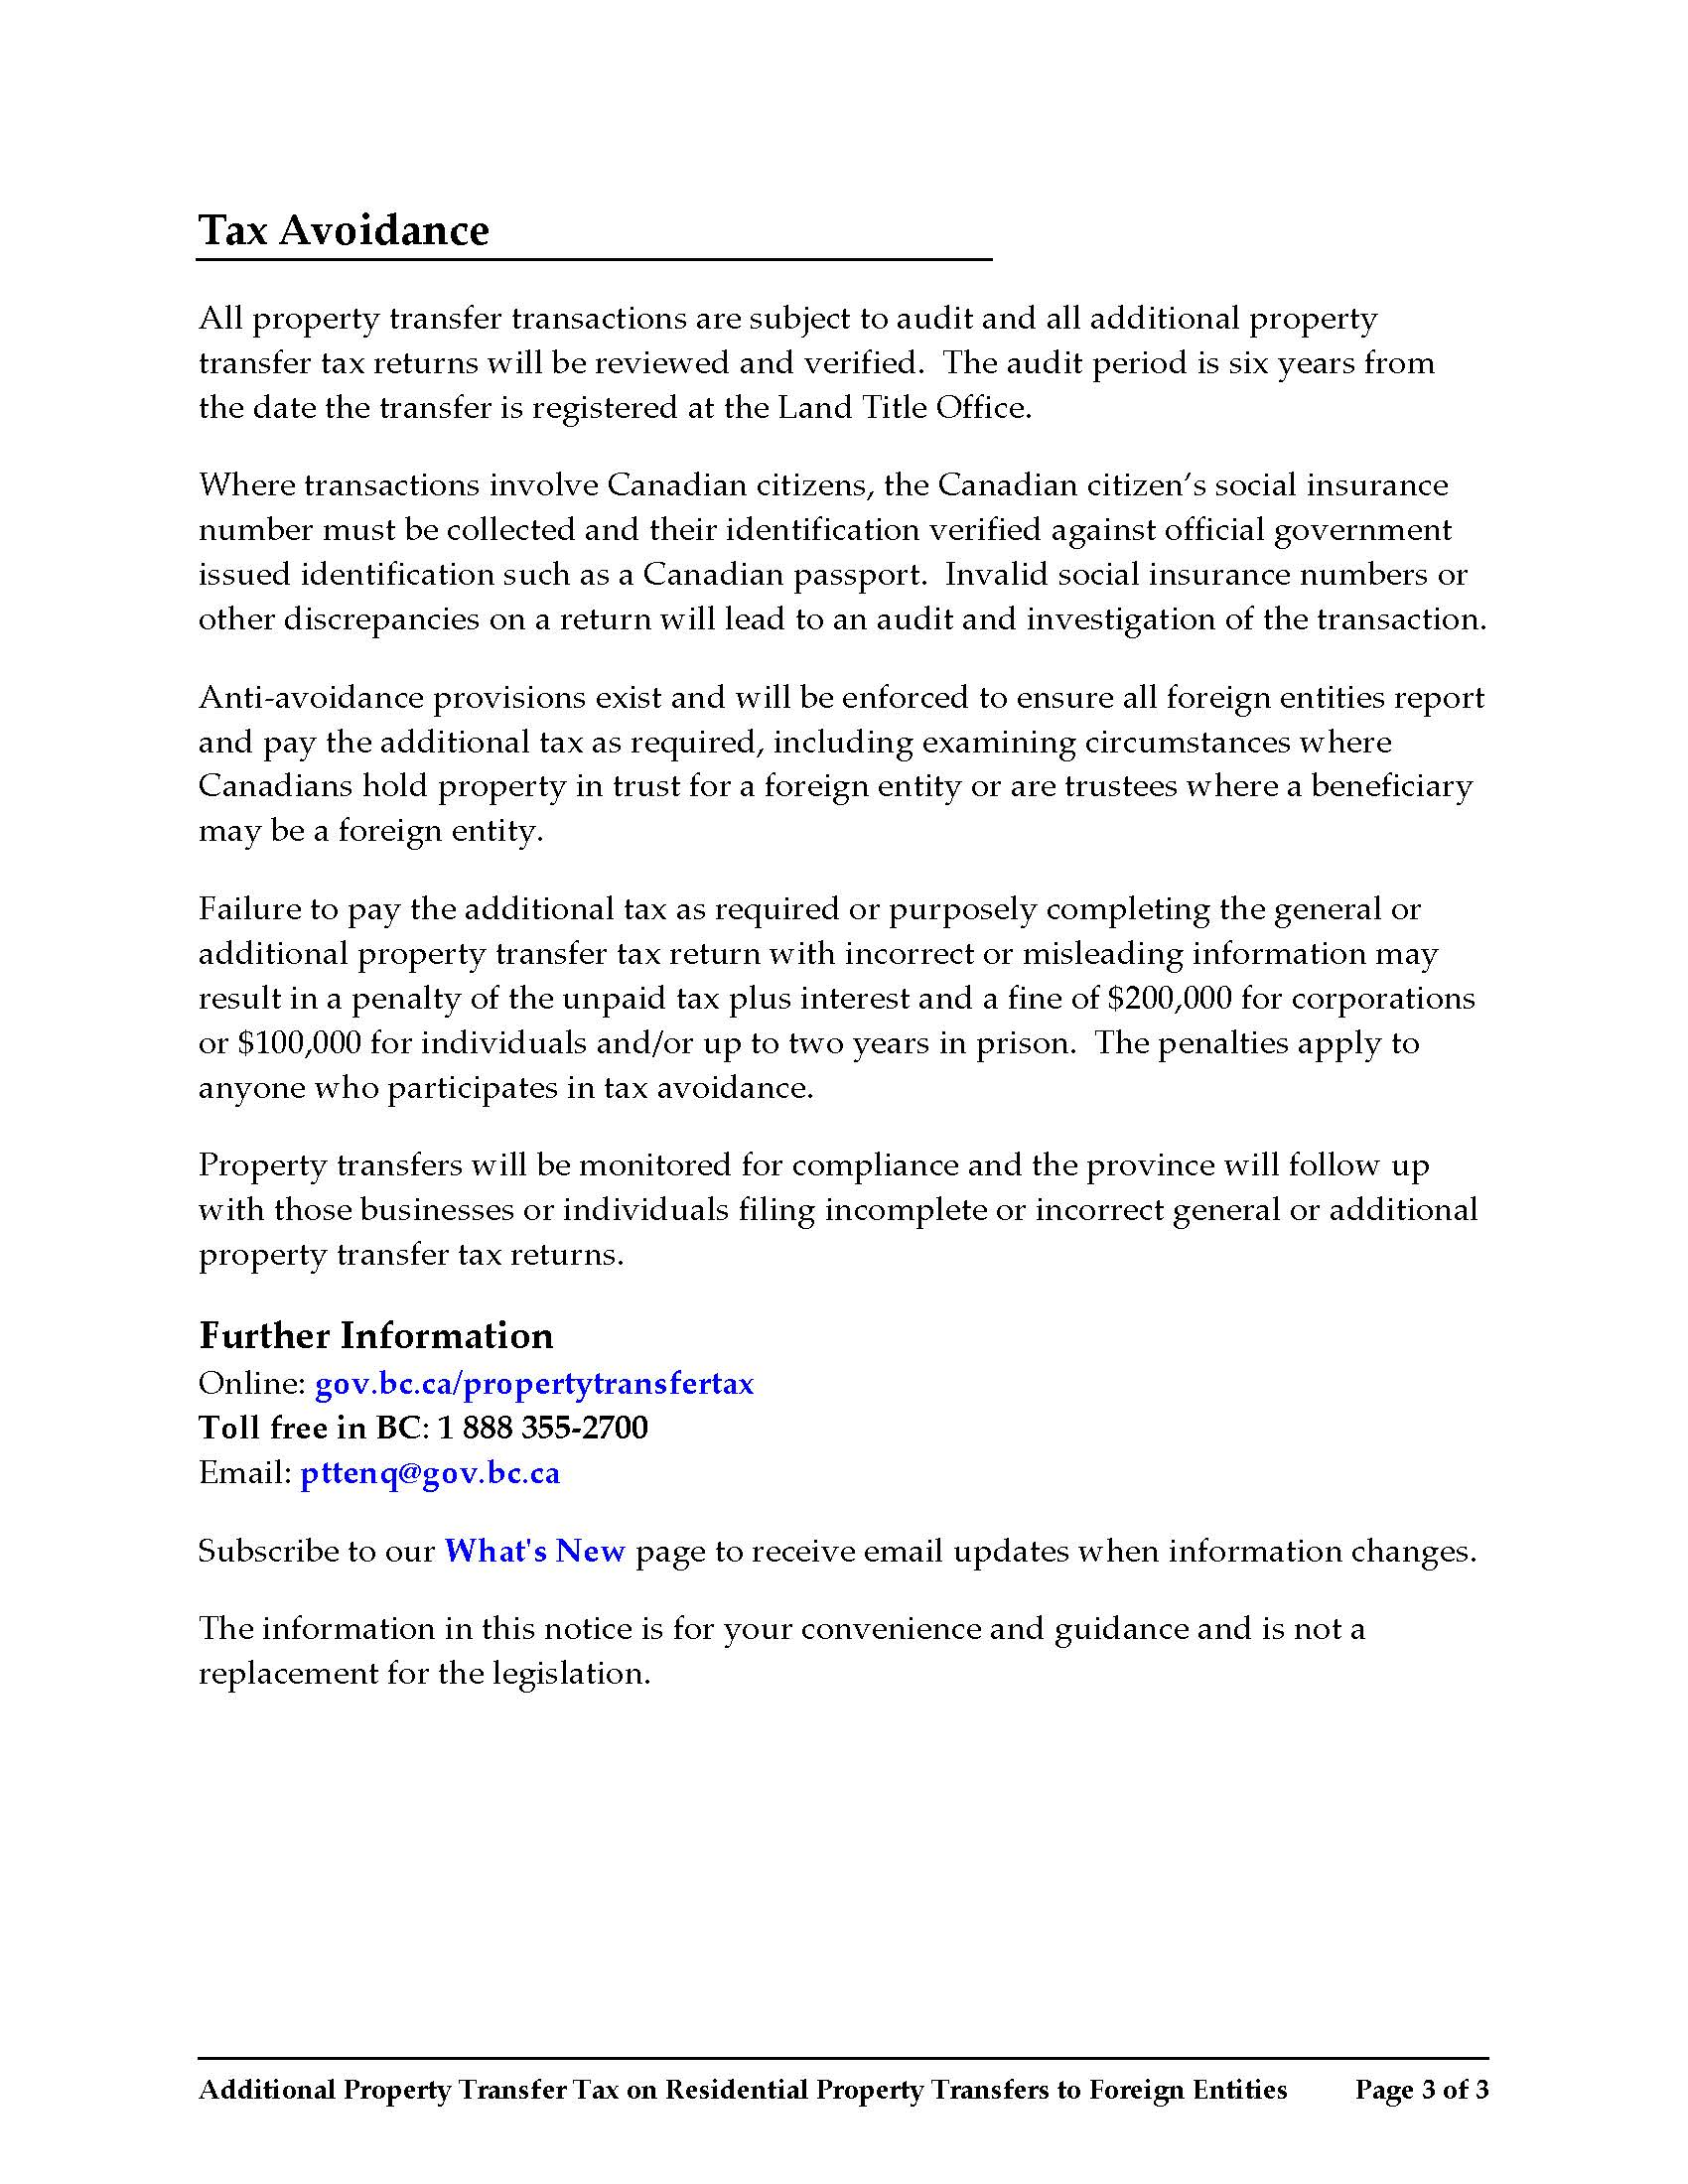 is-006-additional-property-transfer-tax-foreign-entities-vancouver_Page_3